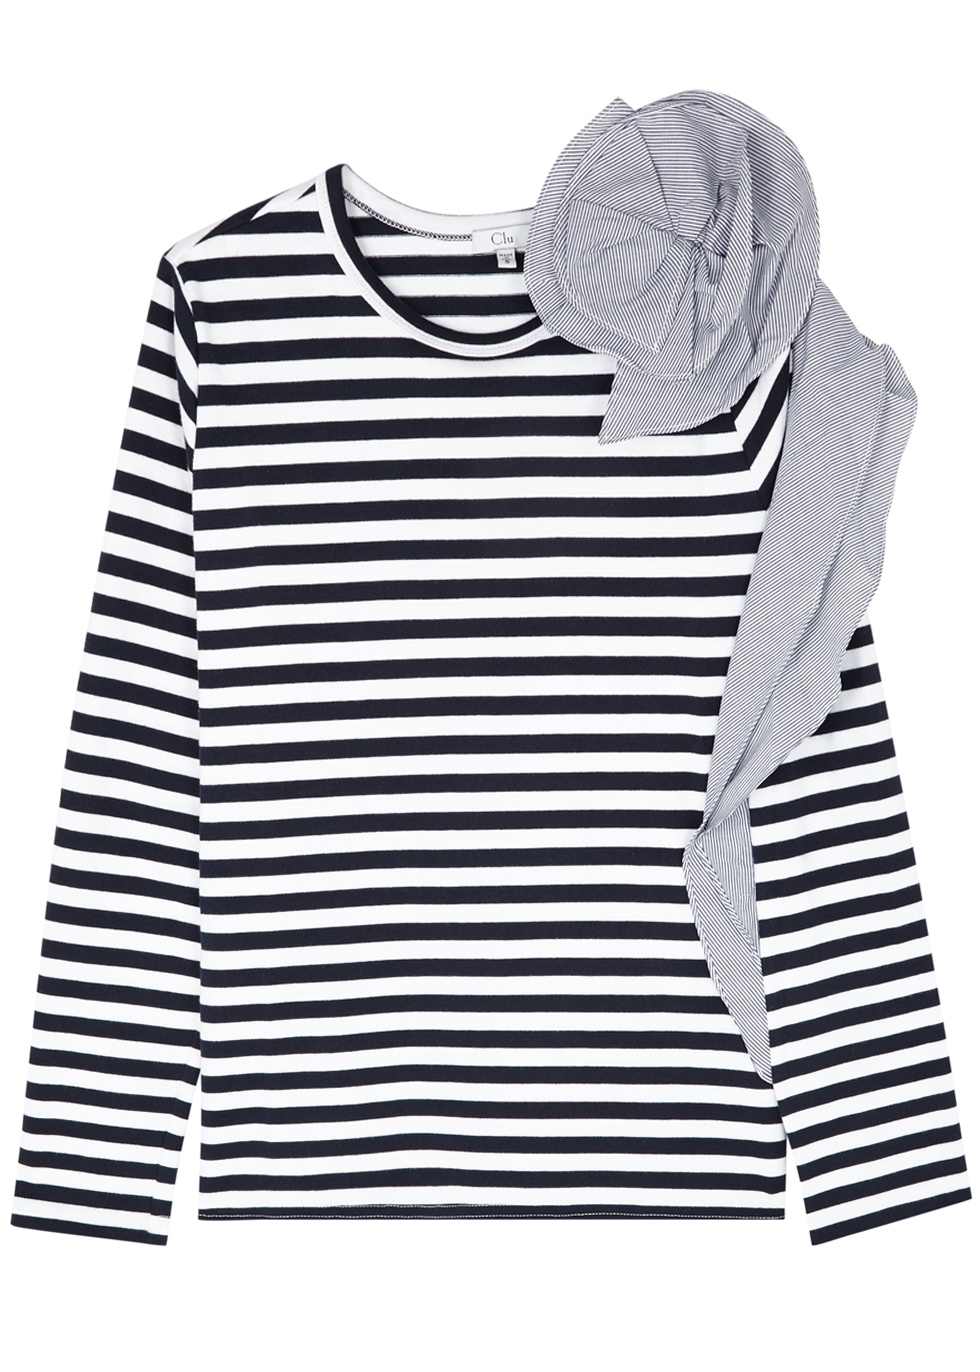 CLU STRIPED RUFFLE-TRIMMED JERSEY TOP